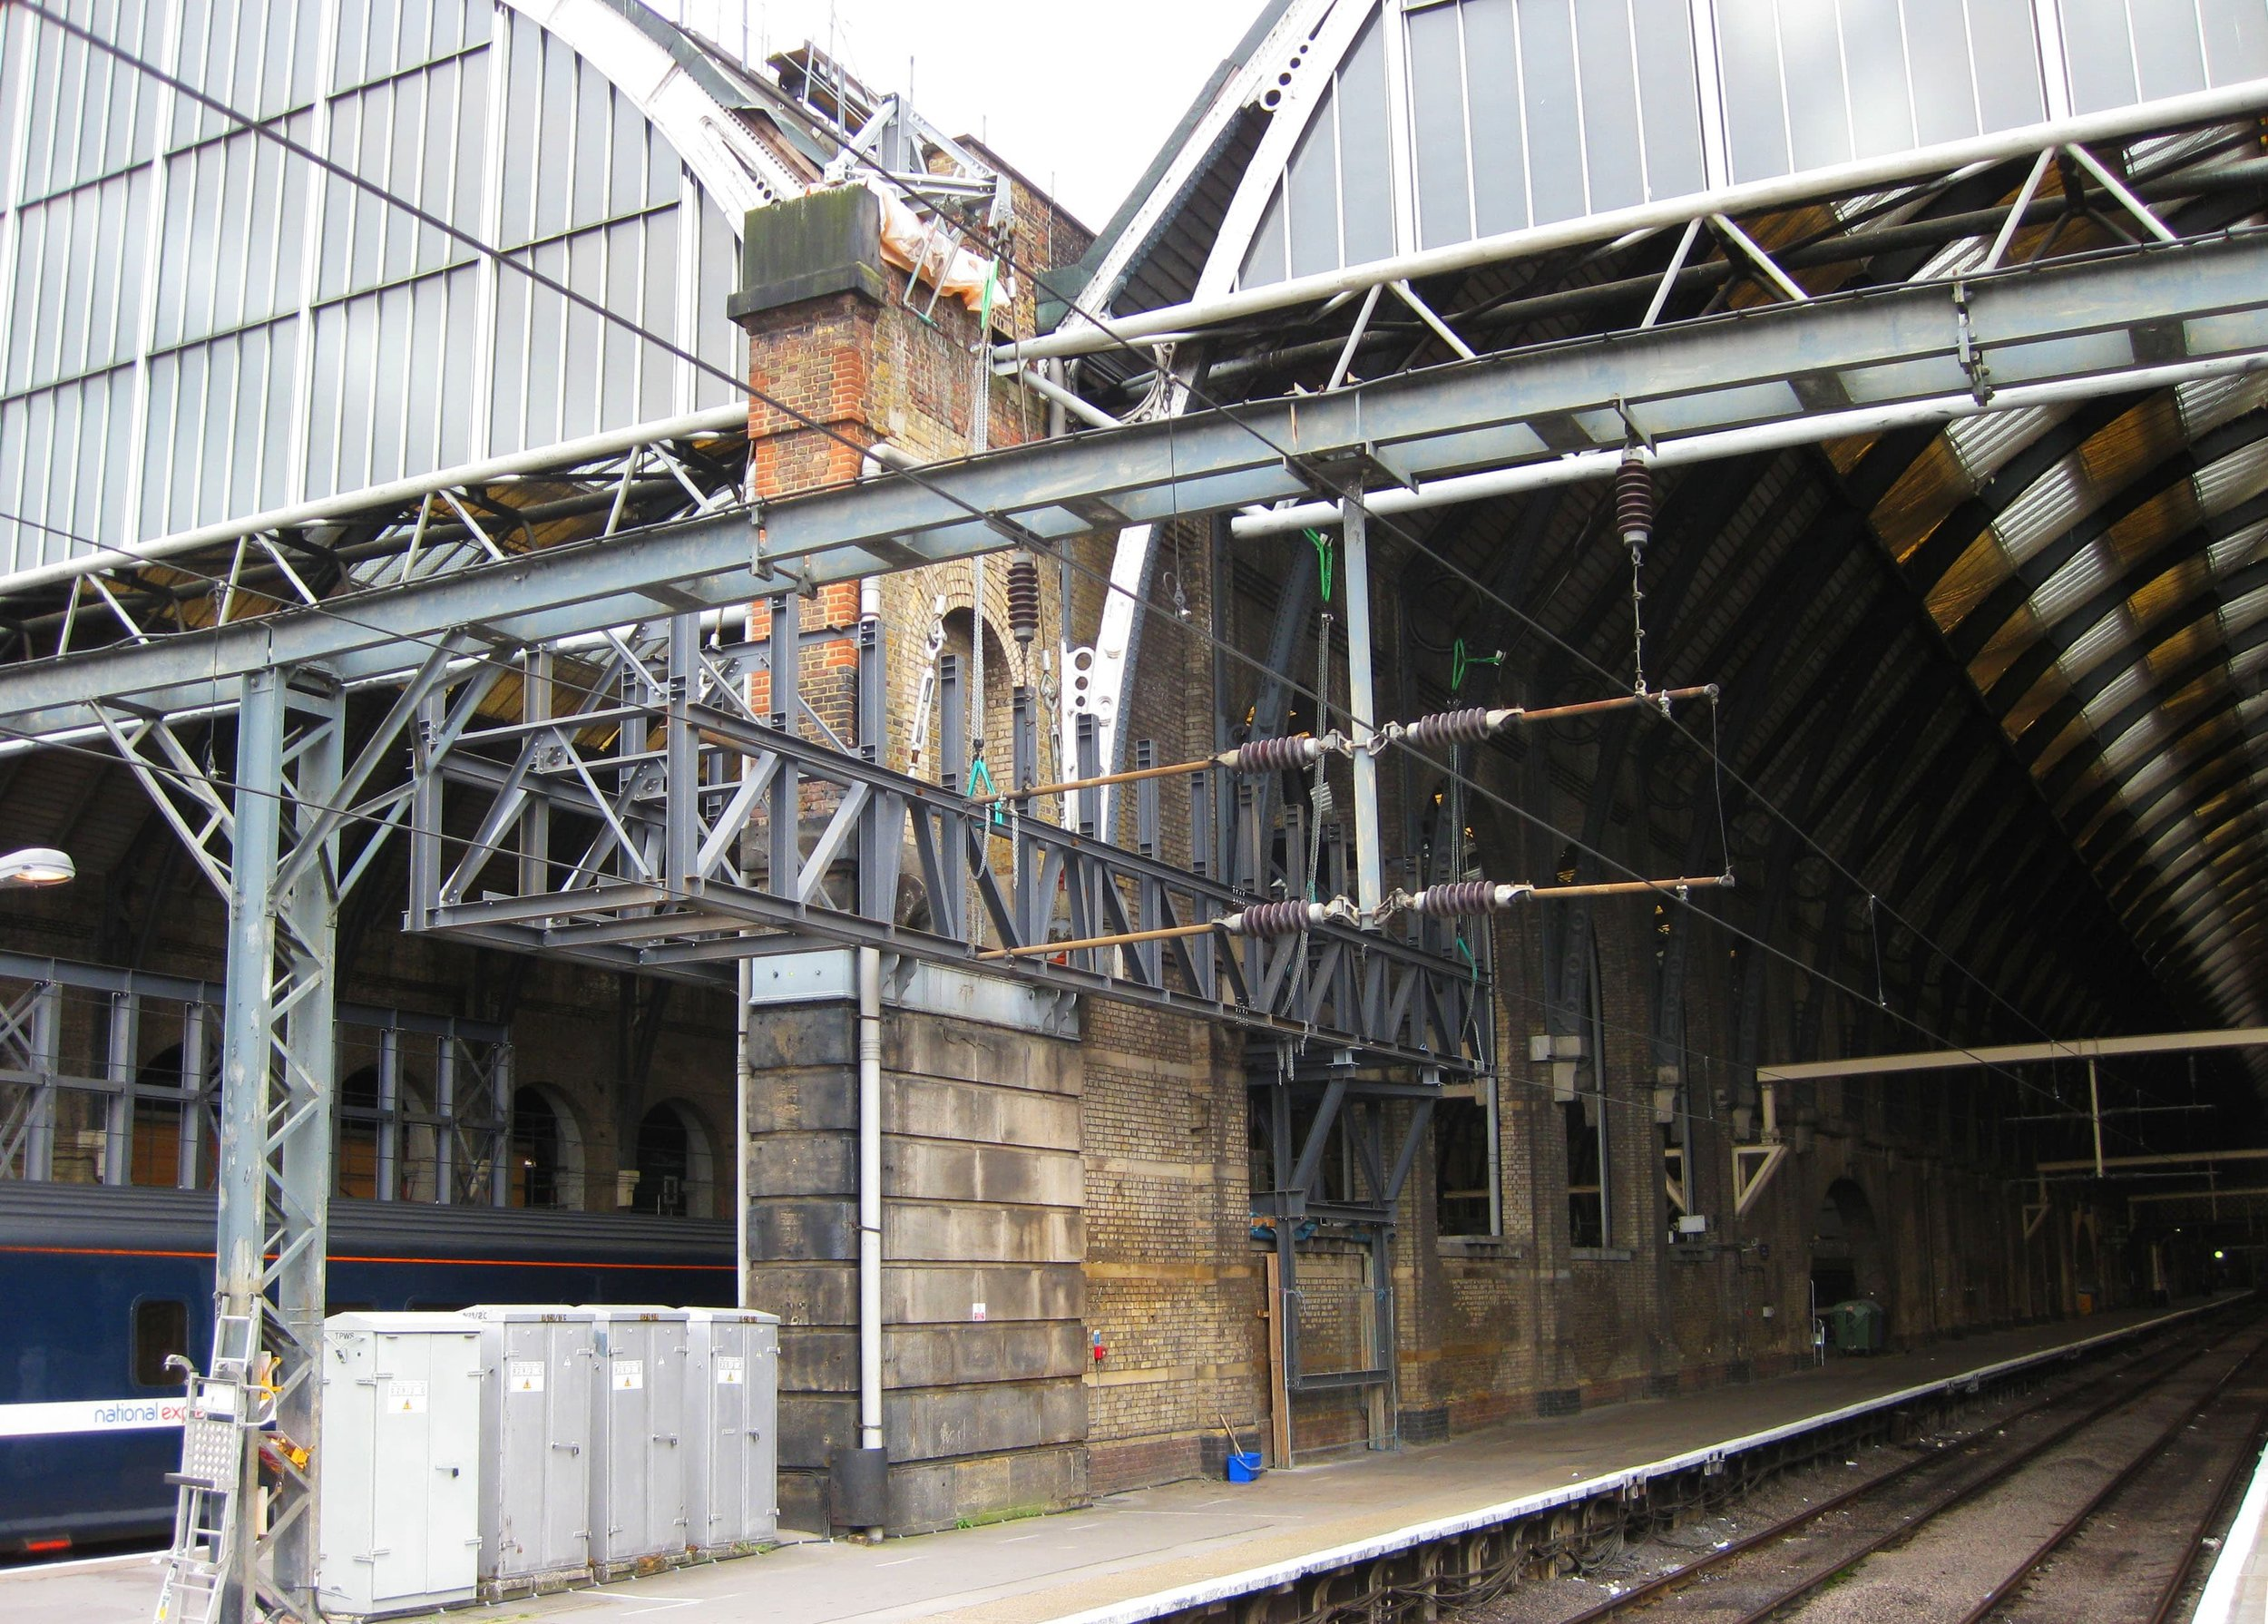 Support trestles for the access gantry